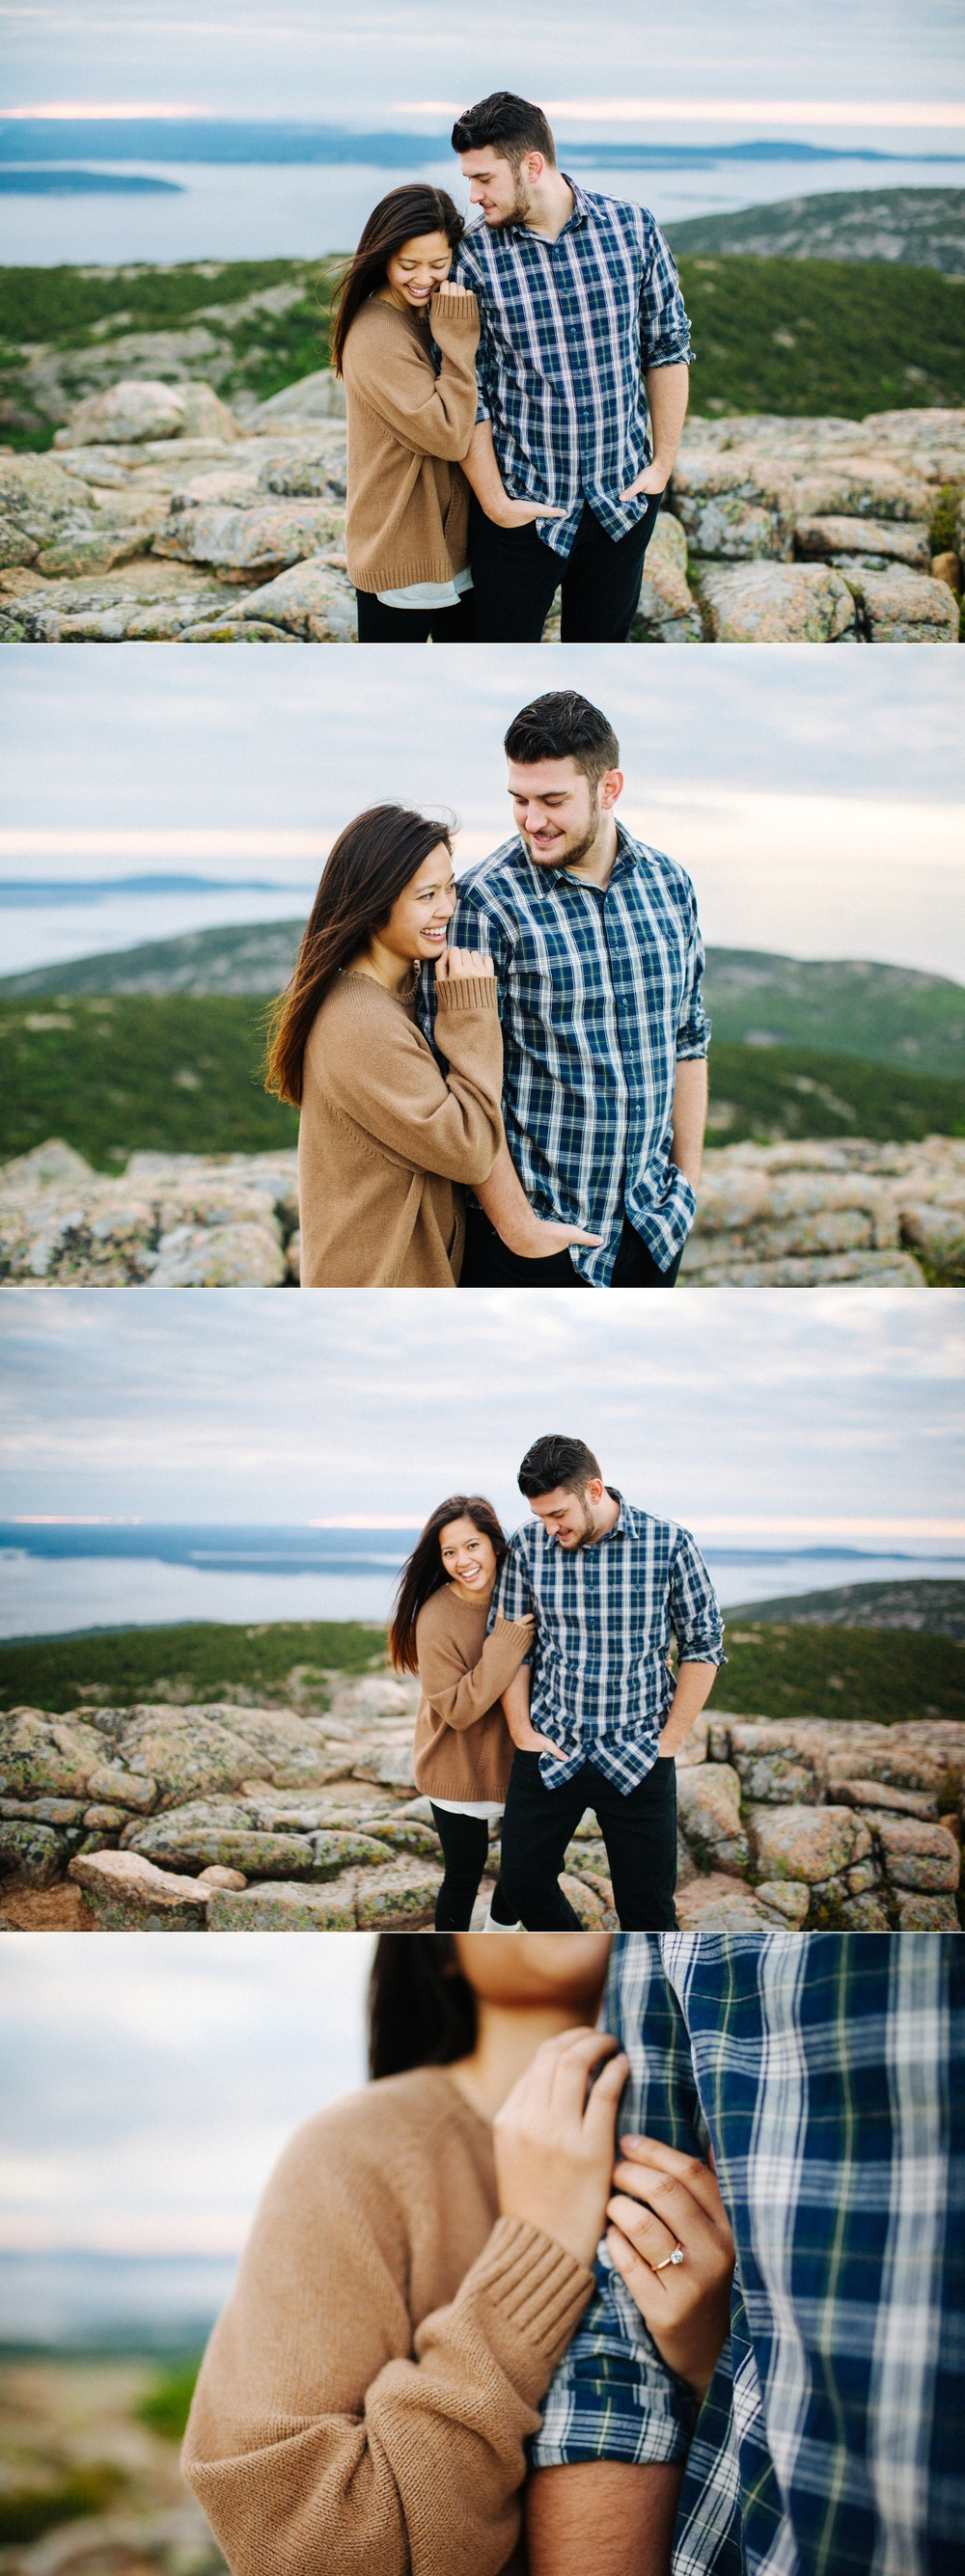 jake and jill acacdia national park engagement session cadillac mountain engagement session jordan pond engagement session maine engagement session jake and katie_0013